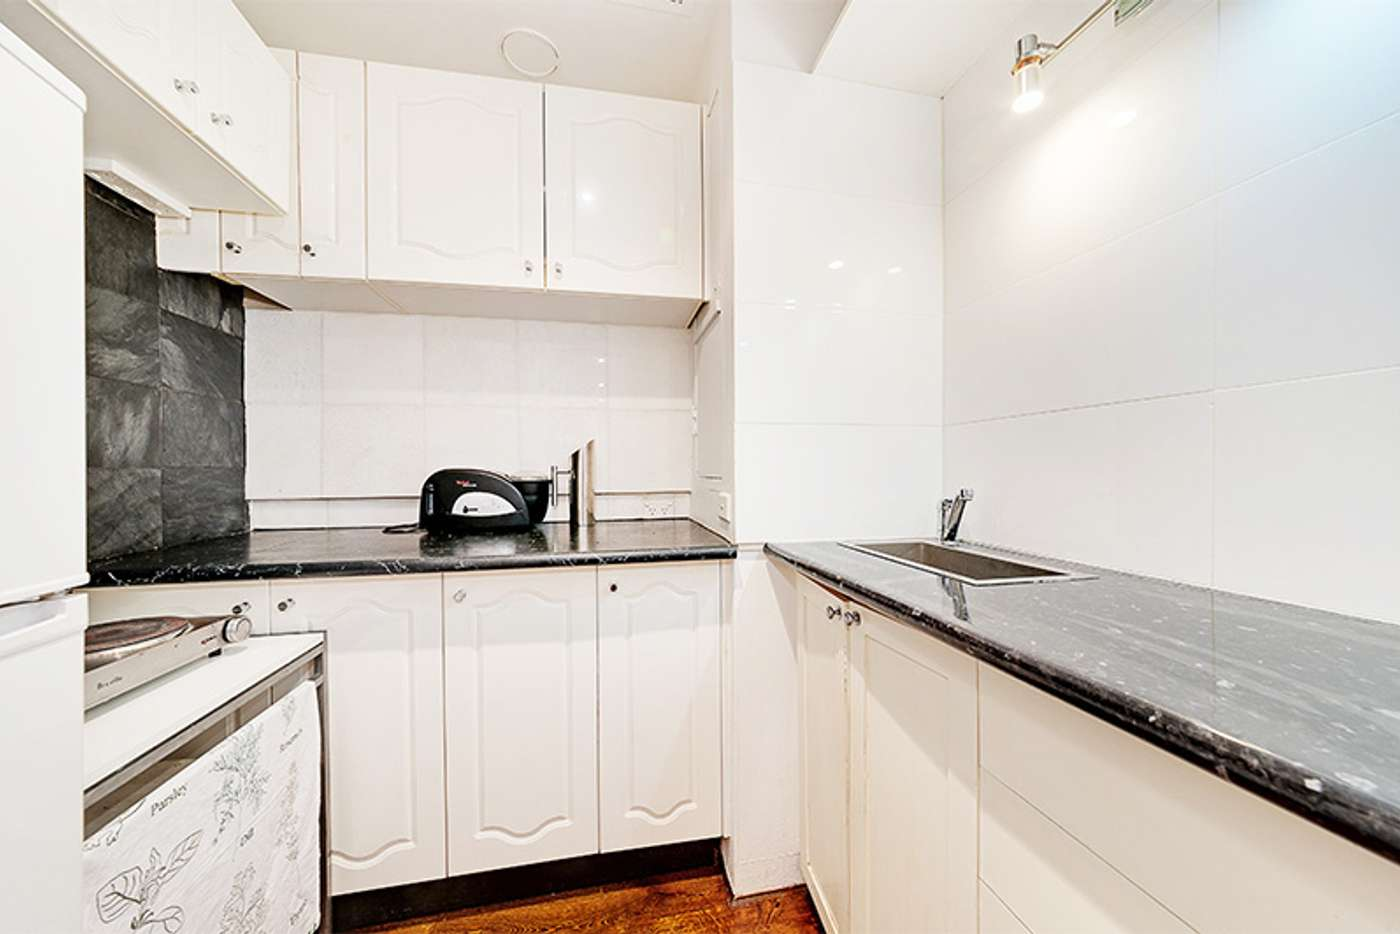 Sixth view of Homely apartment listing, 101/4 Bridge Street, Sydney NSW 2000